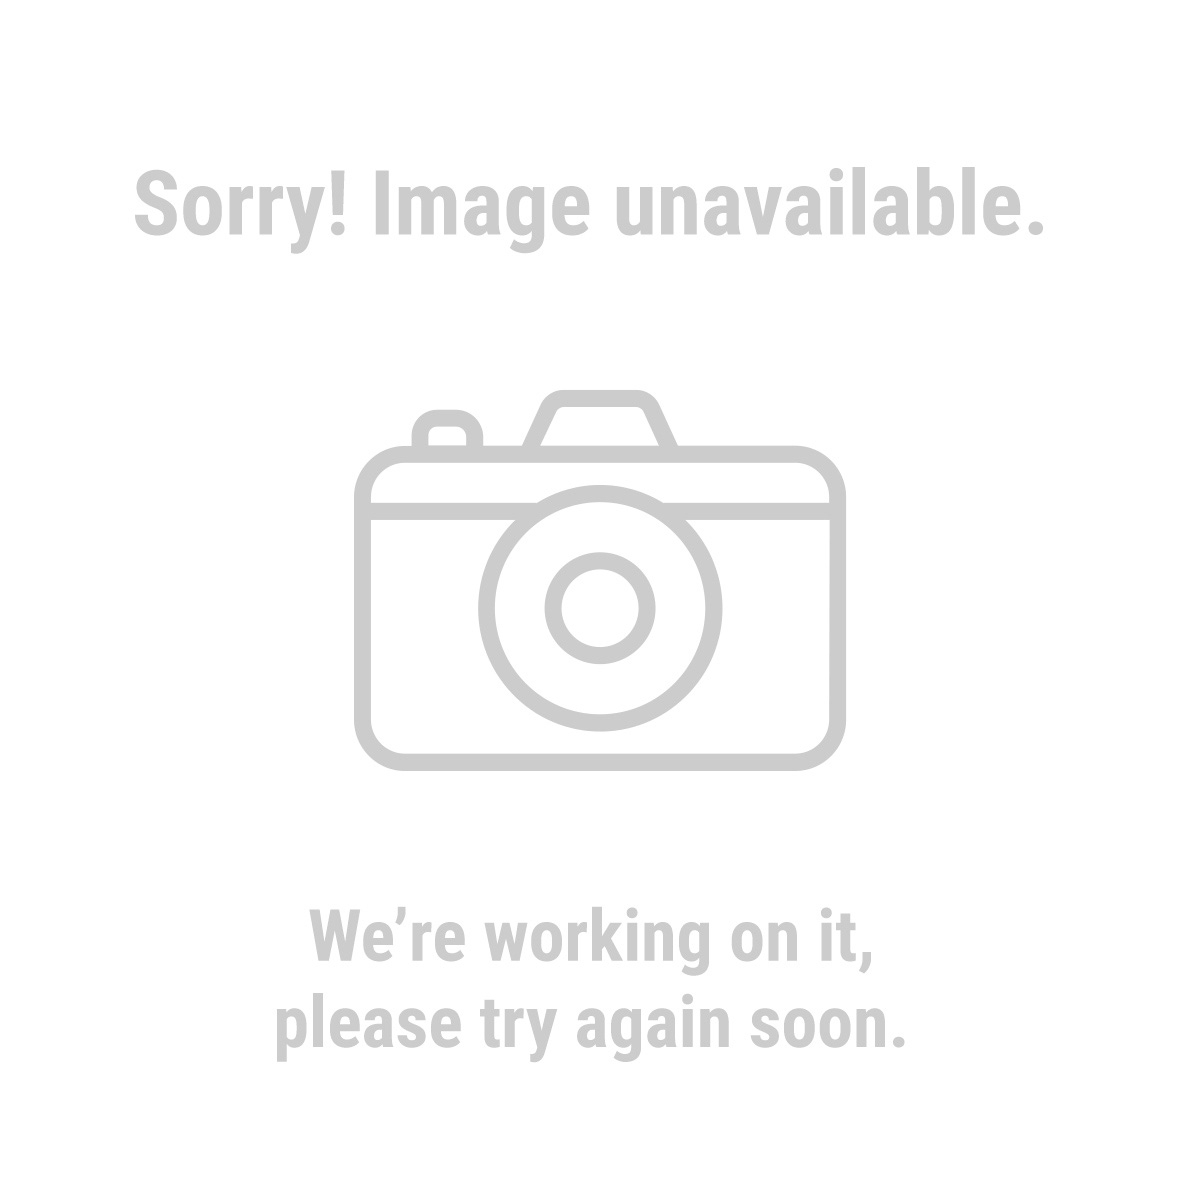 Western Safety 43946 Eyeglass Safety Protectors